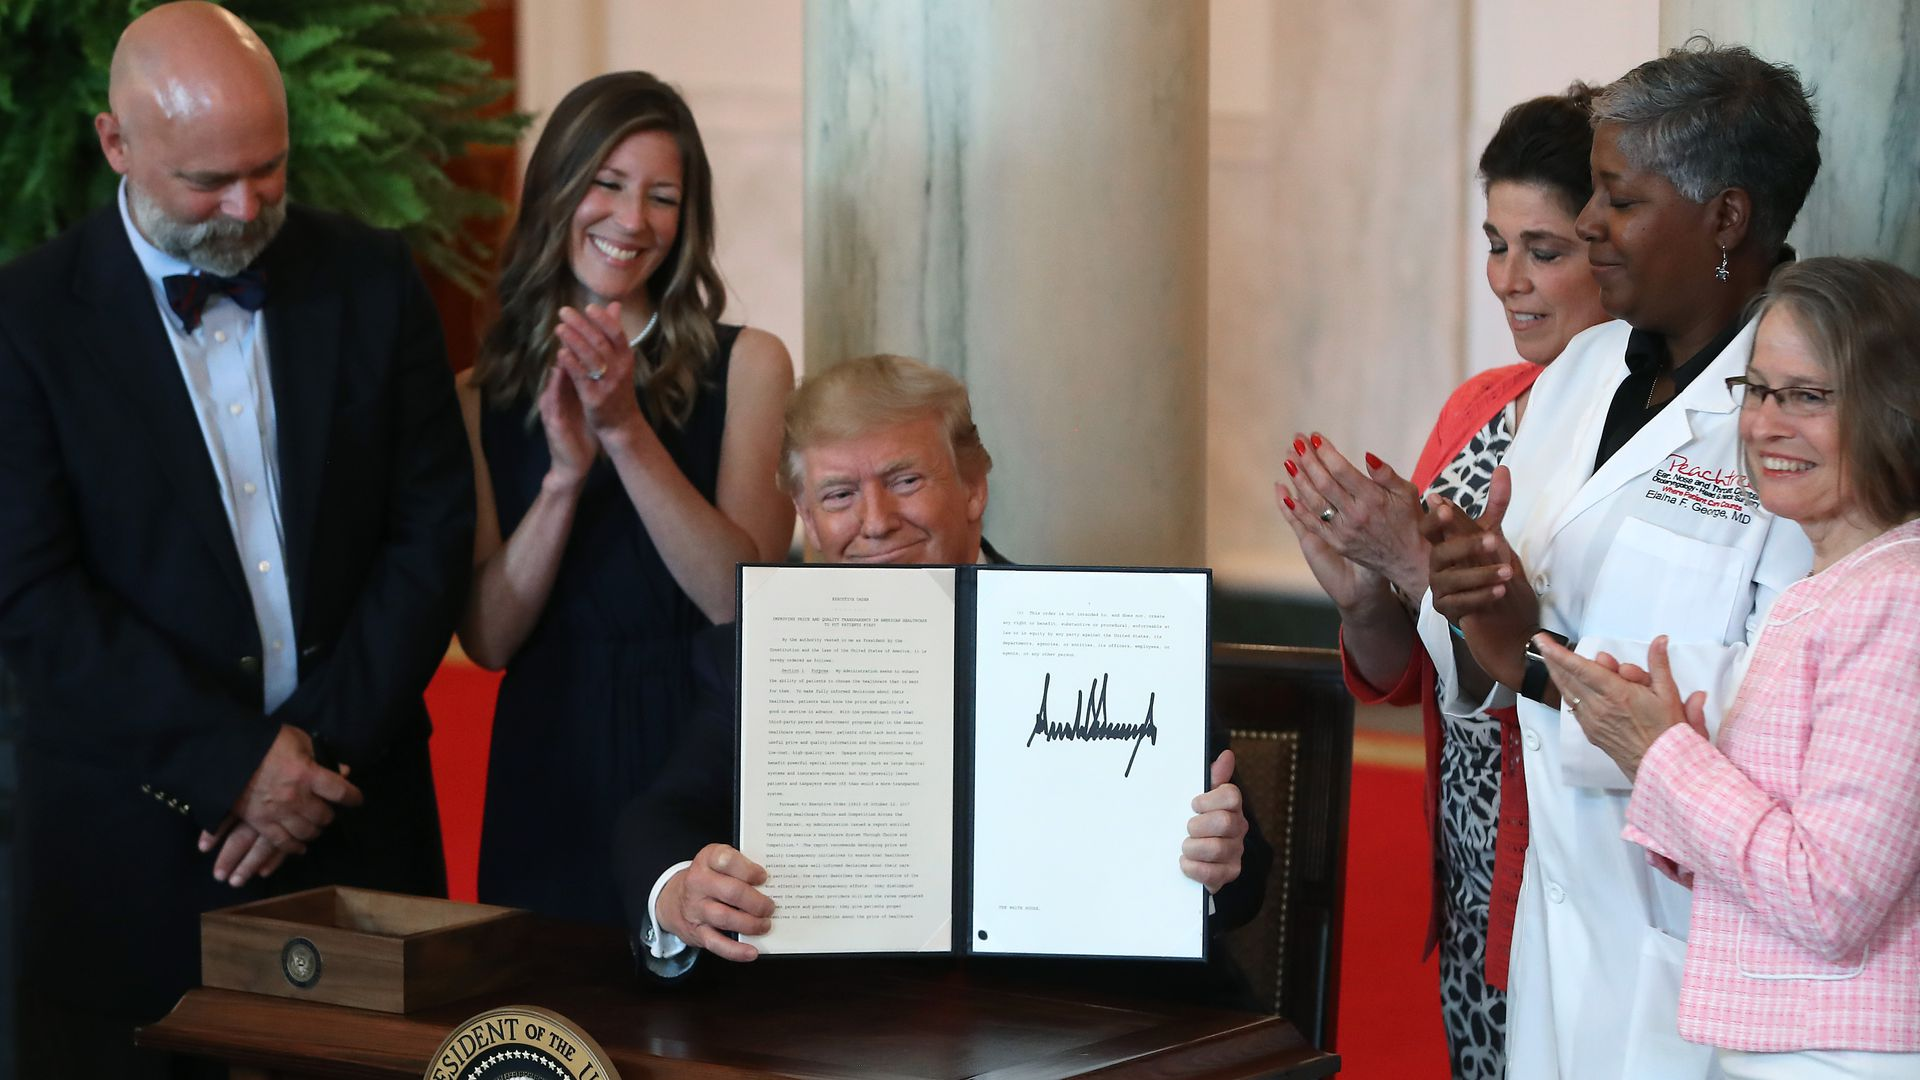 President Trump signs a health care executive order.